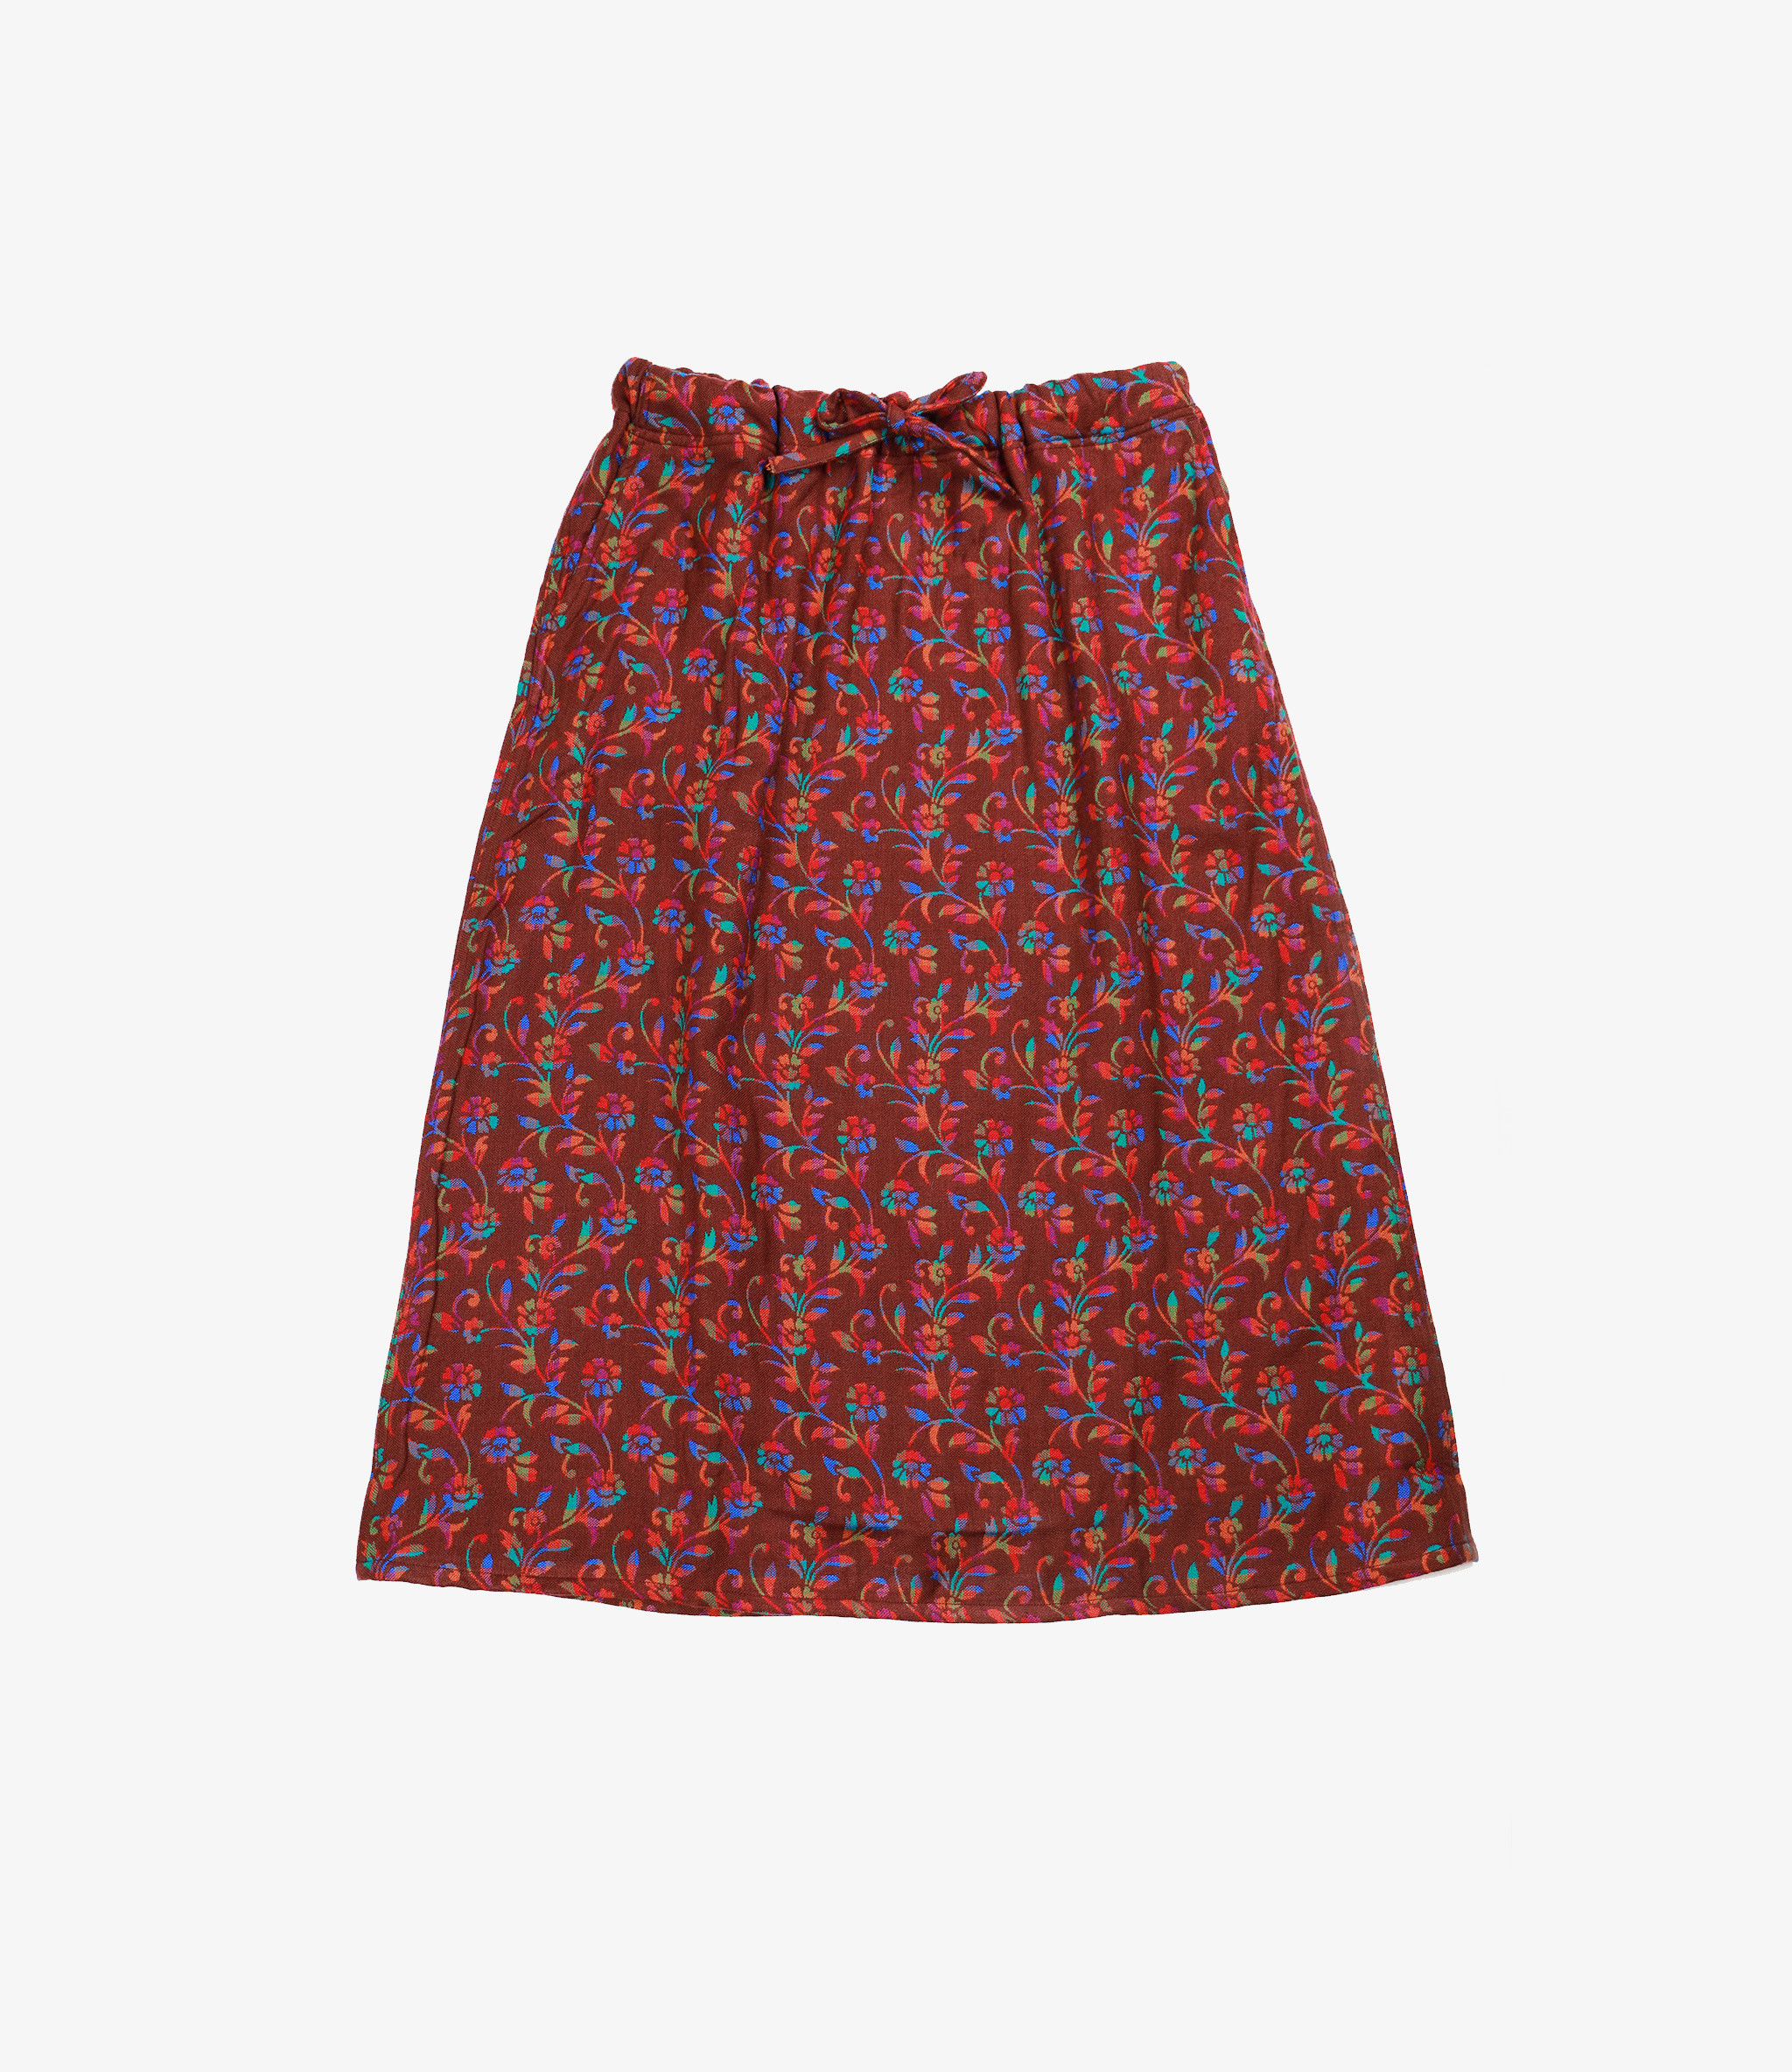 South2 West8 String Skirt - India Jq. - Ivy